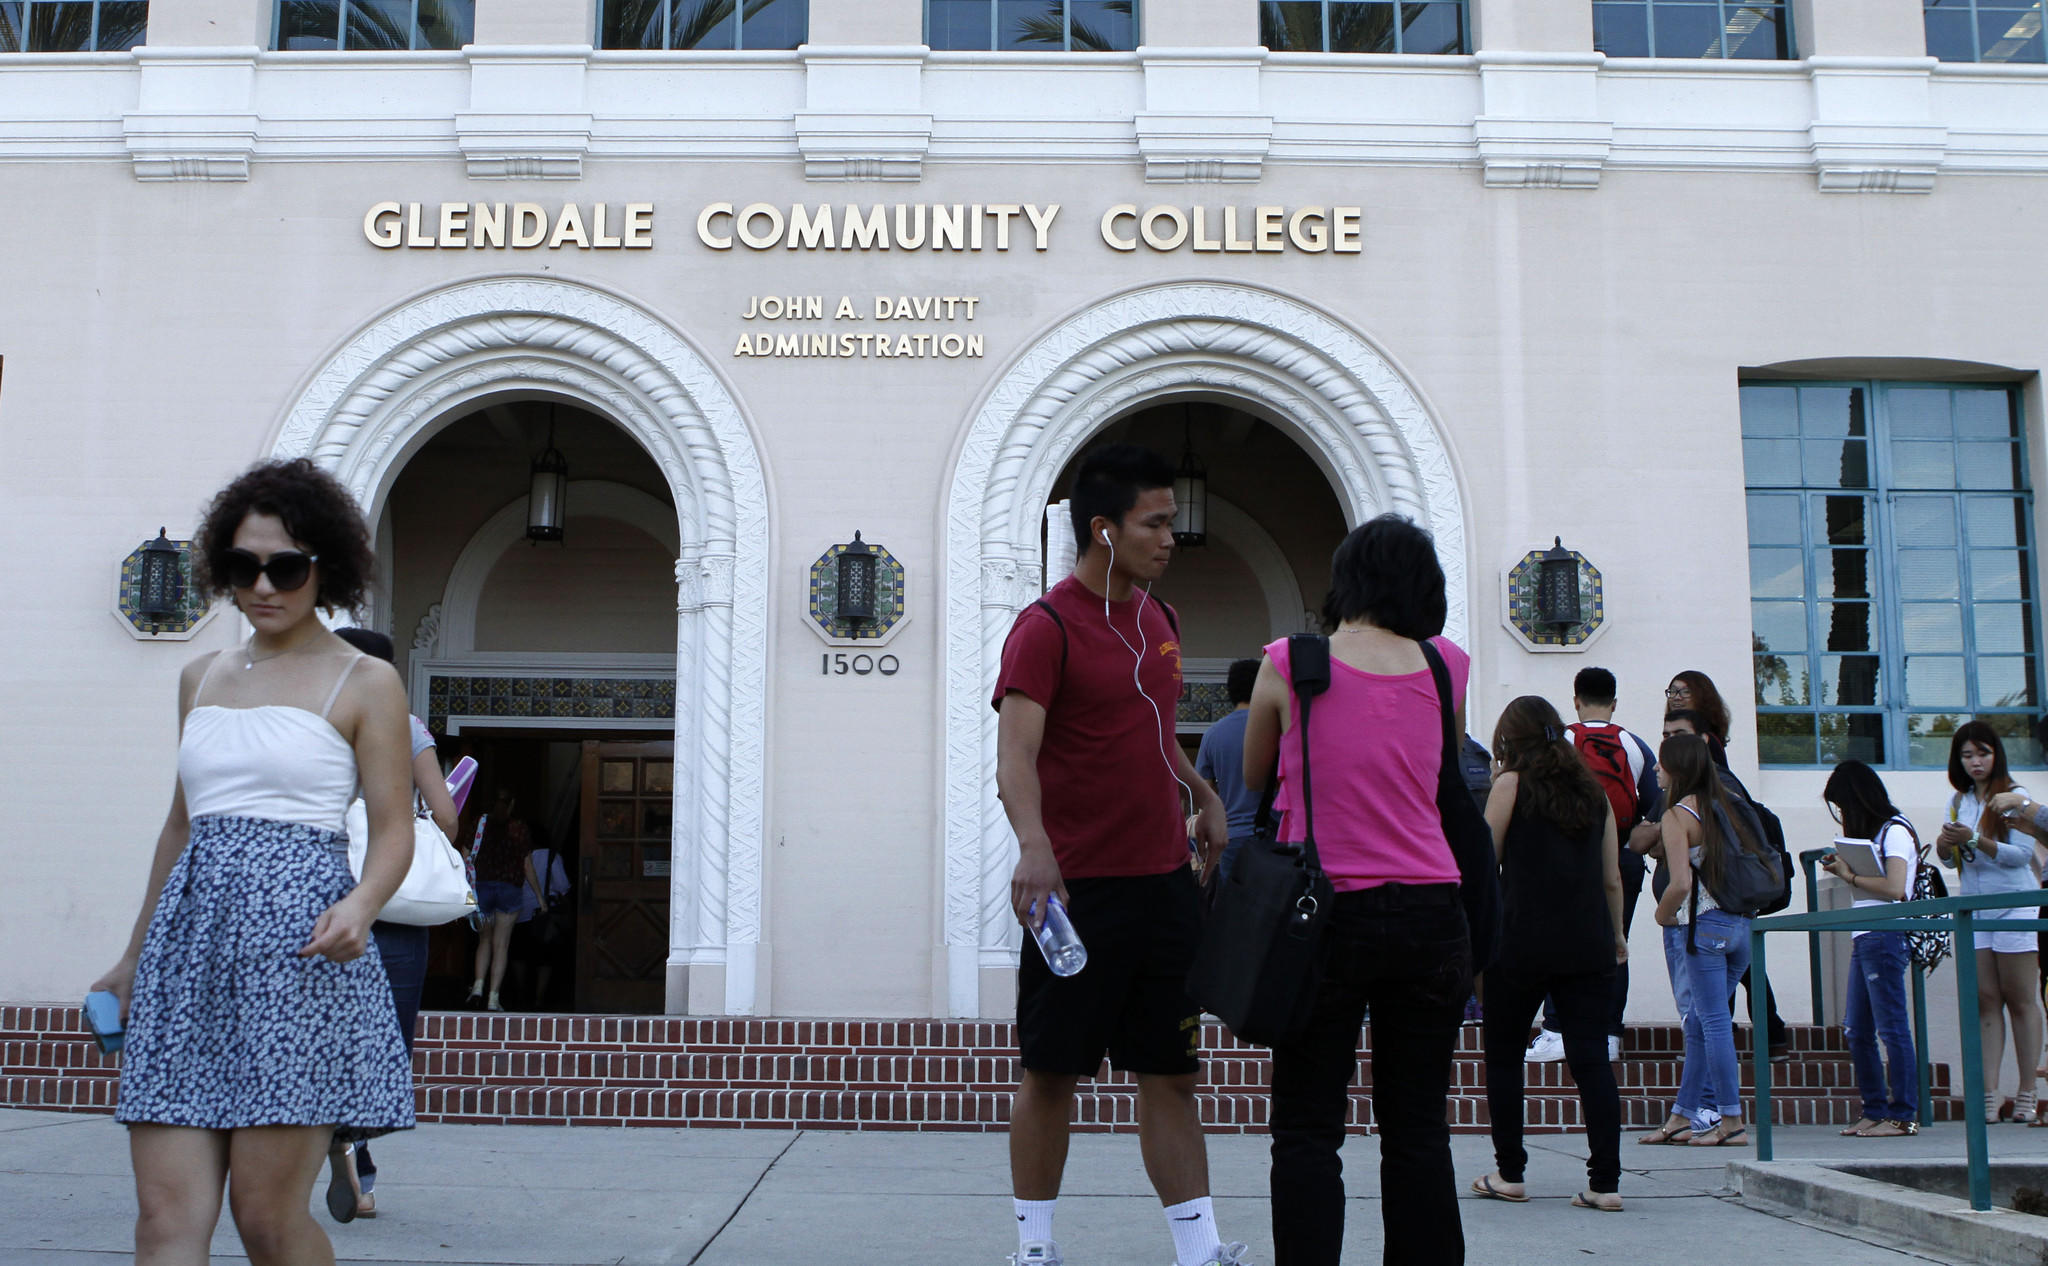 Some students rush to and from buildings as others wait in line on the first day of Fall classes at Glendale Community College on Tuesday, September 3, 2013.